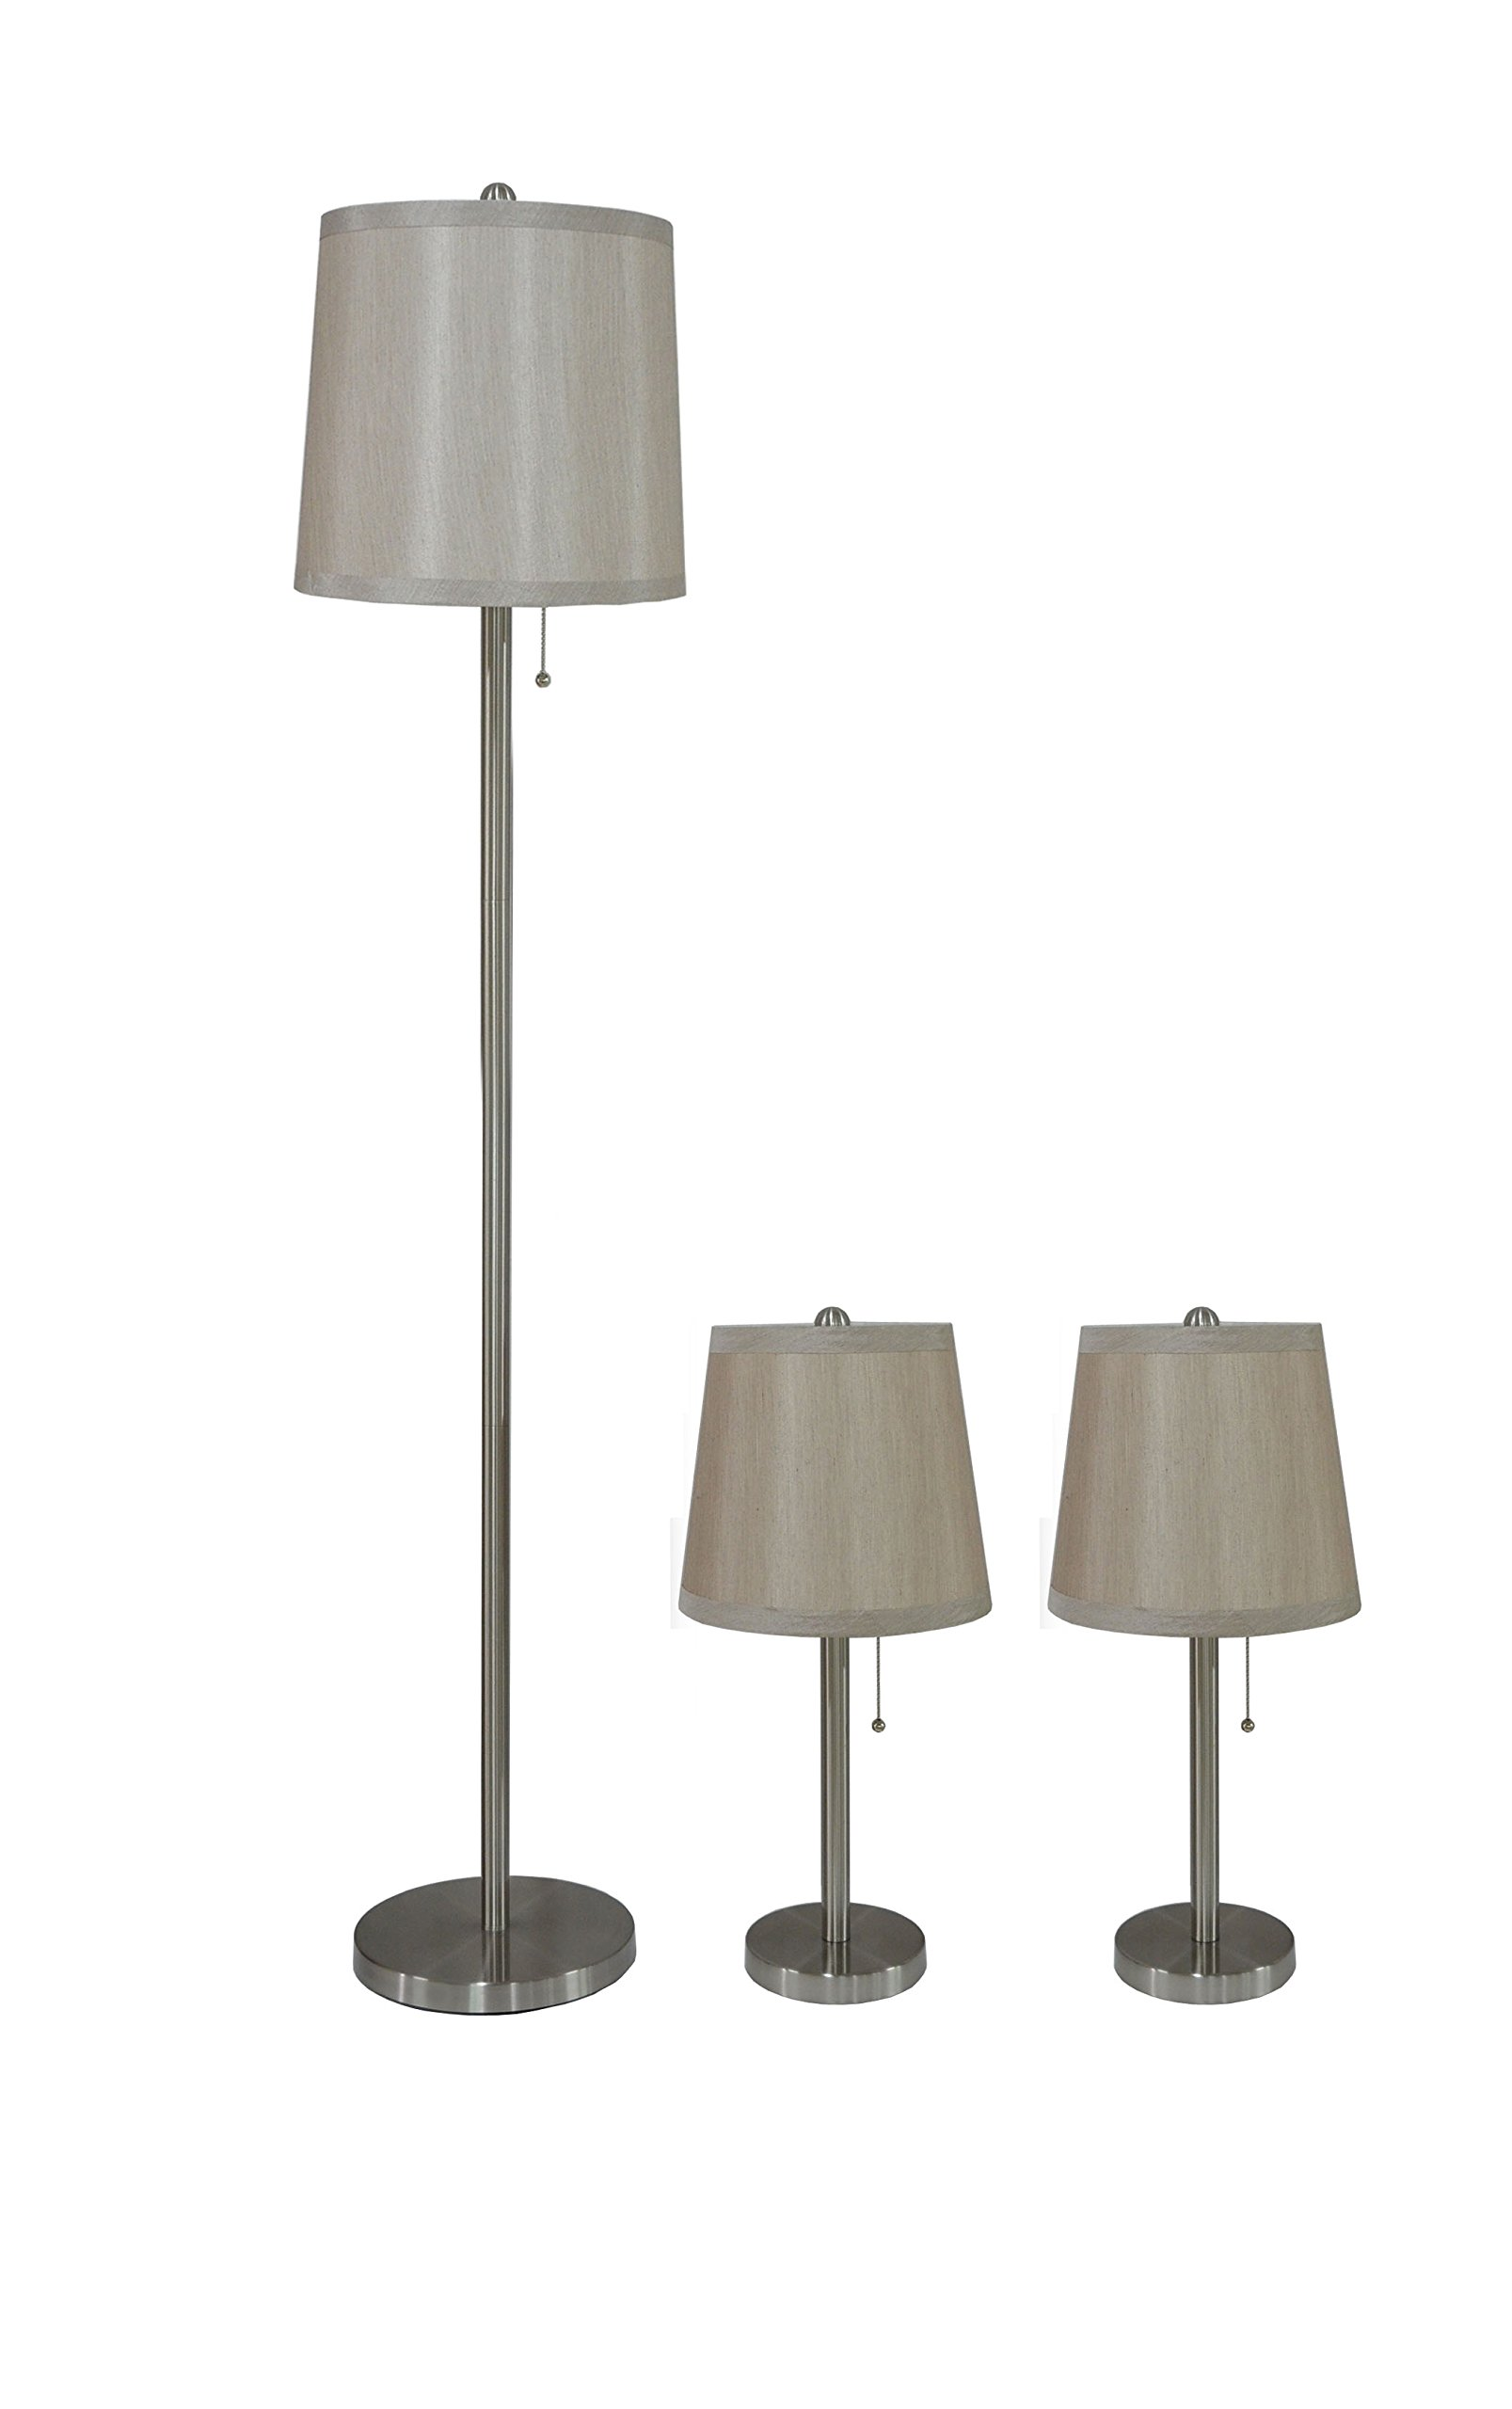 Urbanest Lamon 3-Piece Table and Floor Lamp Set in Brushed Nickel with Champagne Silk Lamp Shades by Urbanest (Image #1)